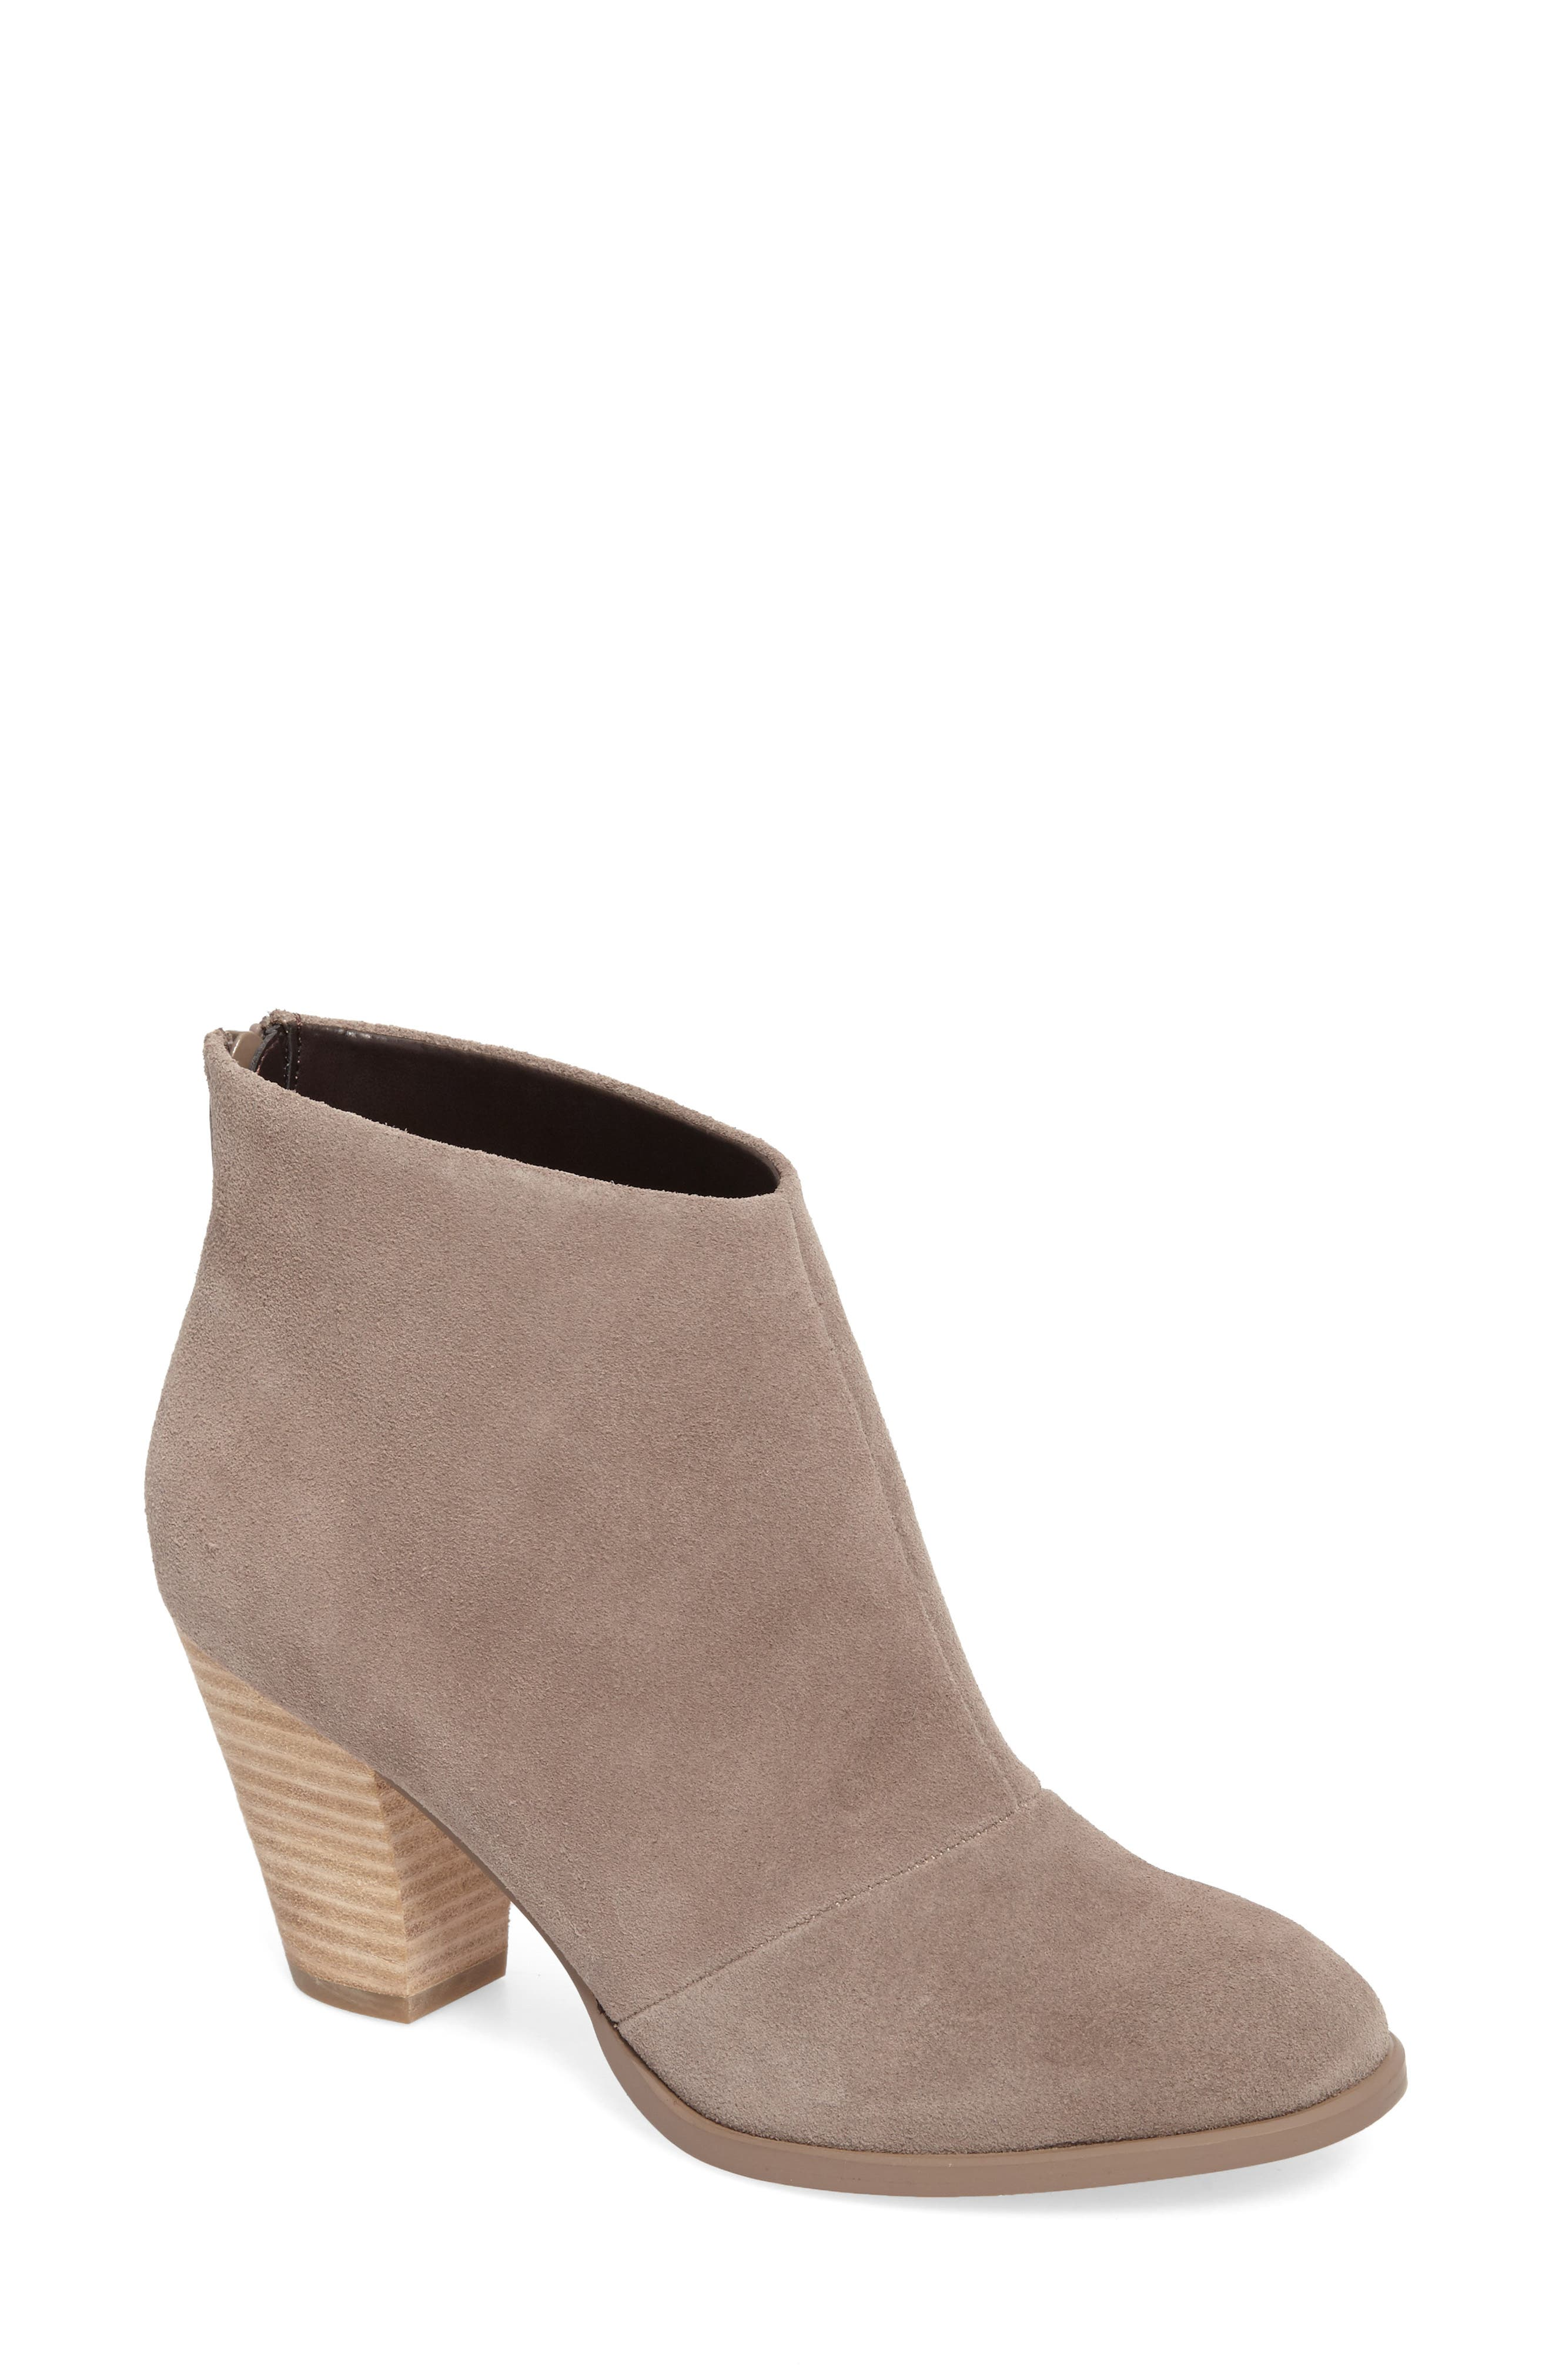 'Devyn' Ankle Bootie,                             Main thumbnail 1, color,                             020